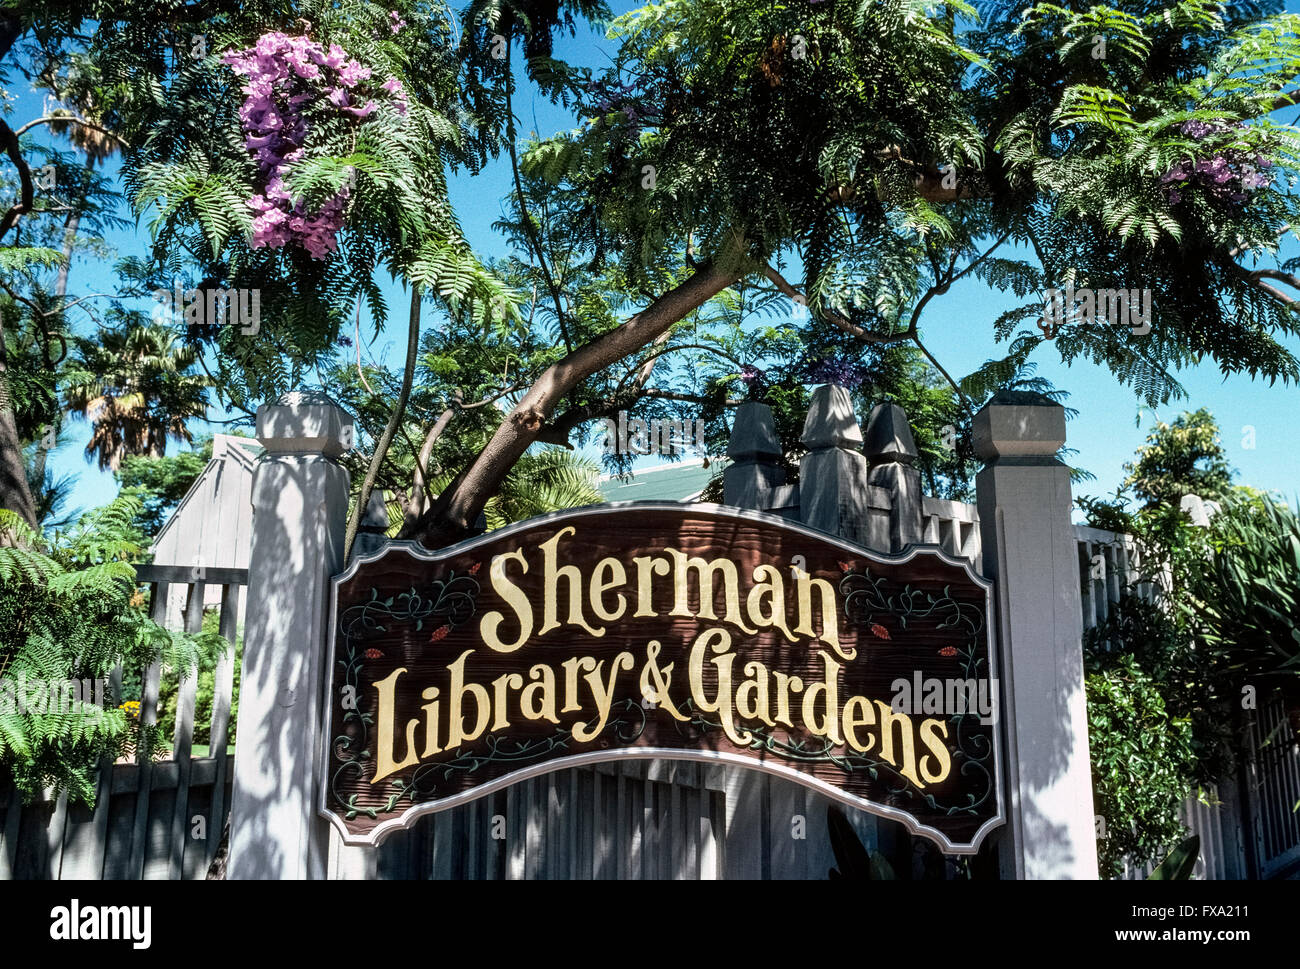 Attractive Stock Photo   The Sherman Library U0026 Gardens In Corona Del Mar, Orange County,  California, USA, Is A Unique Tourist Attraction With Plants From Around The  ...